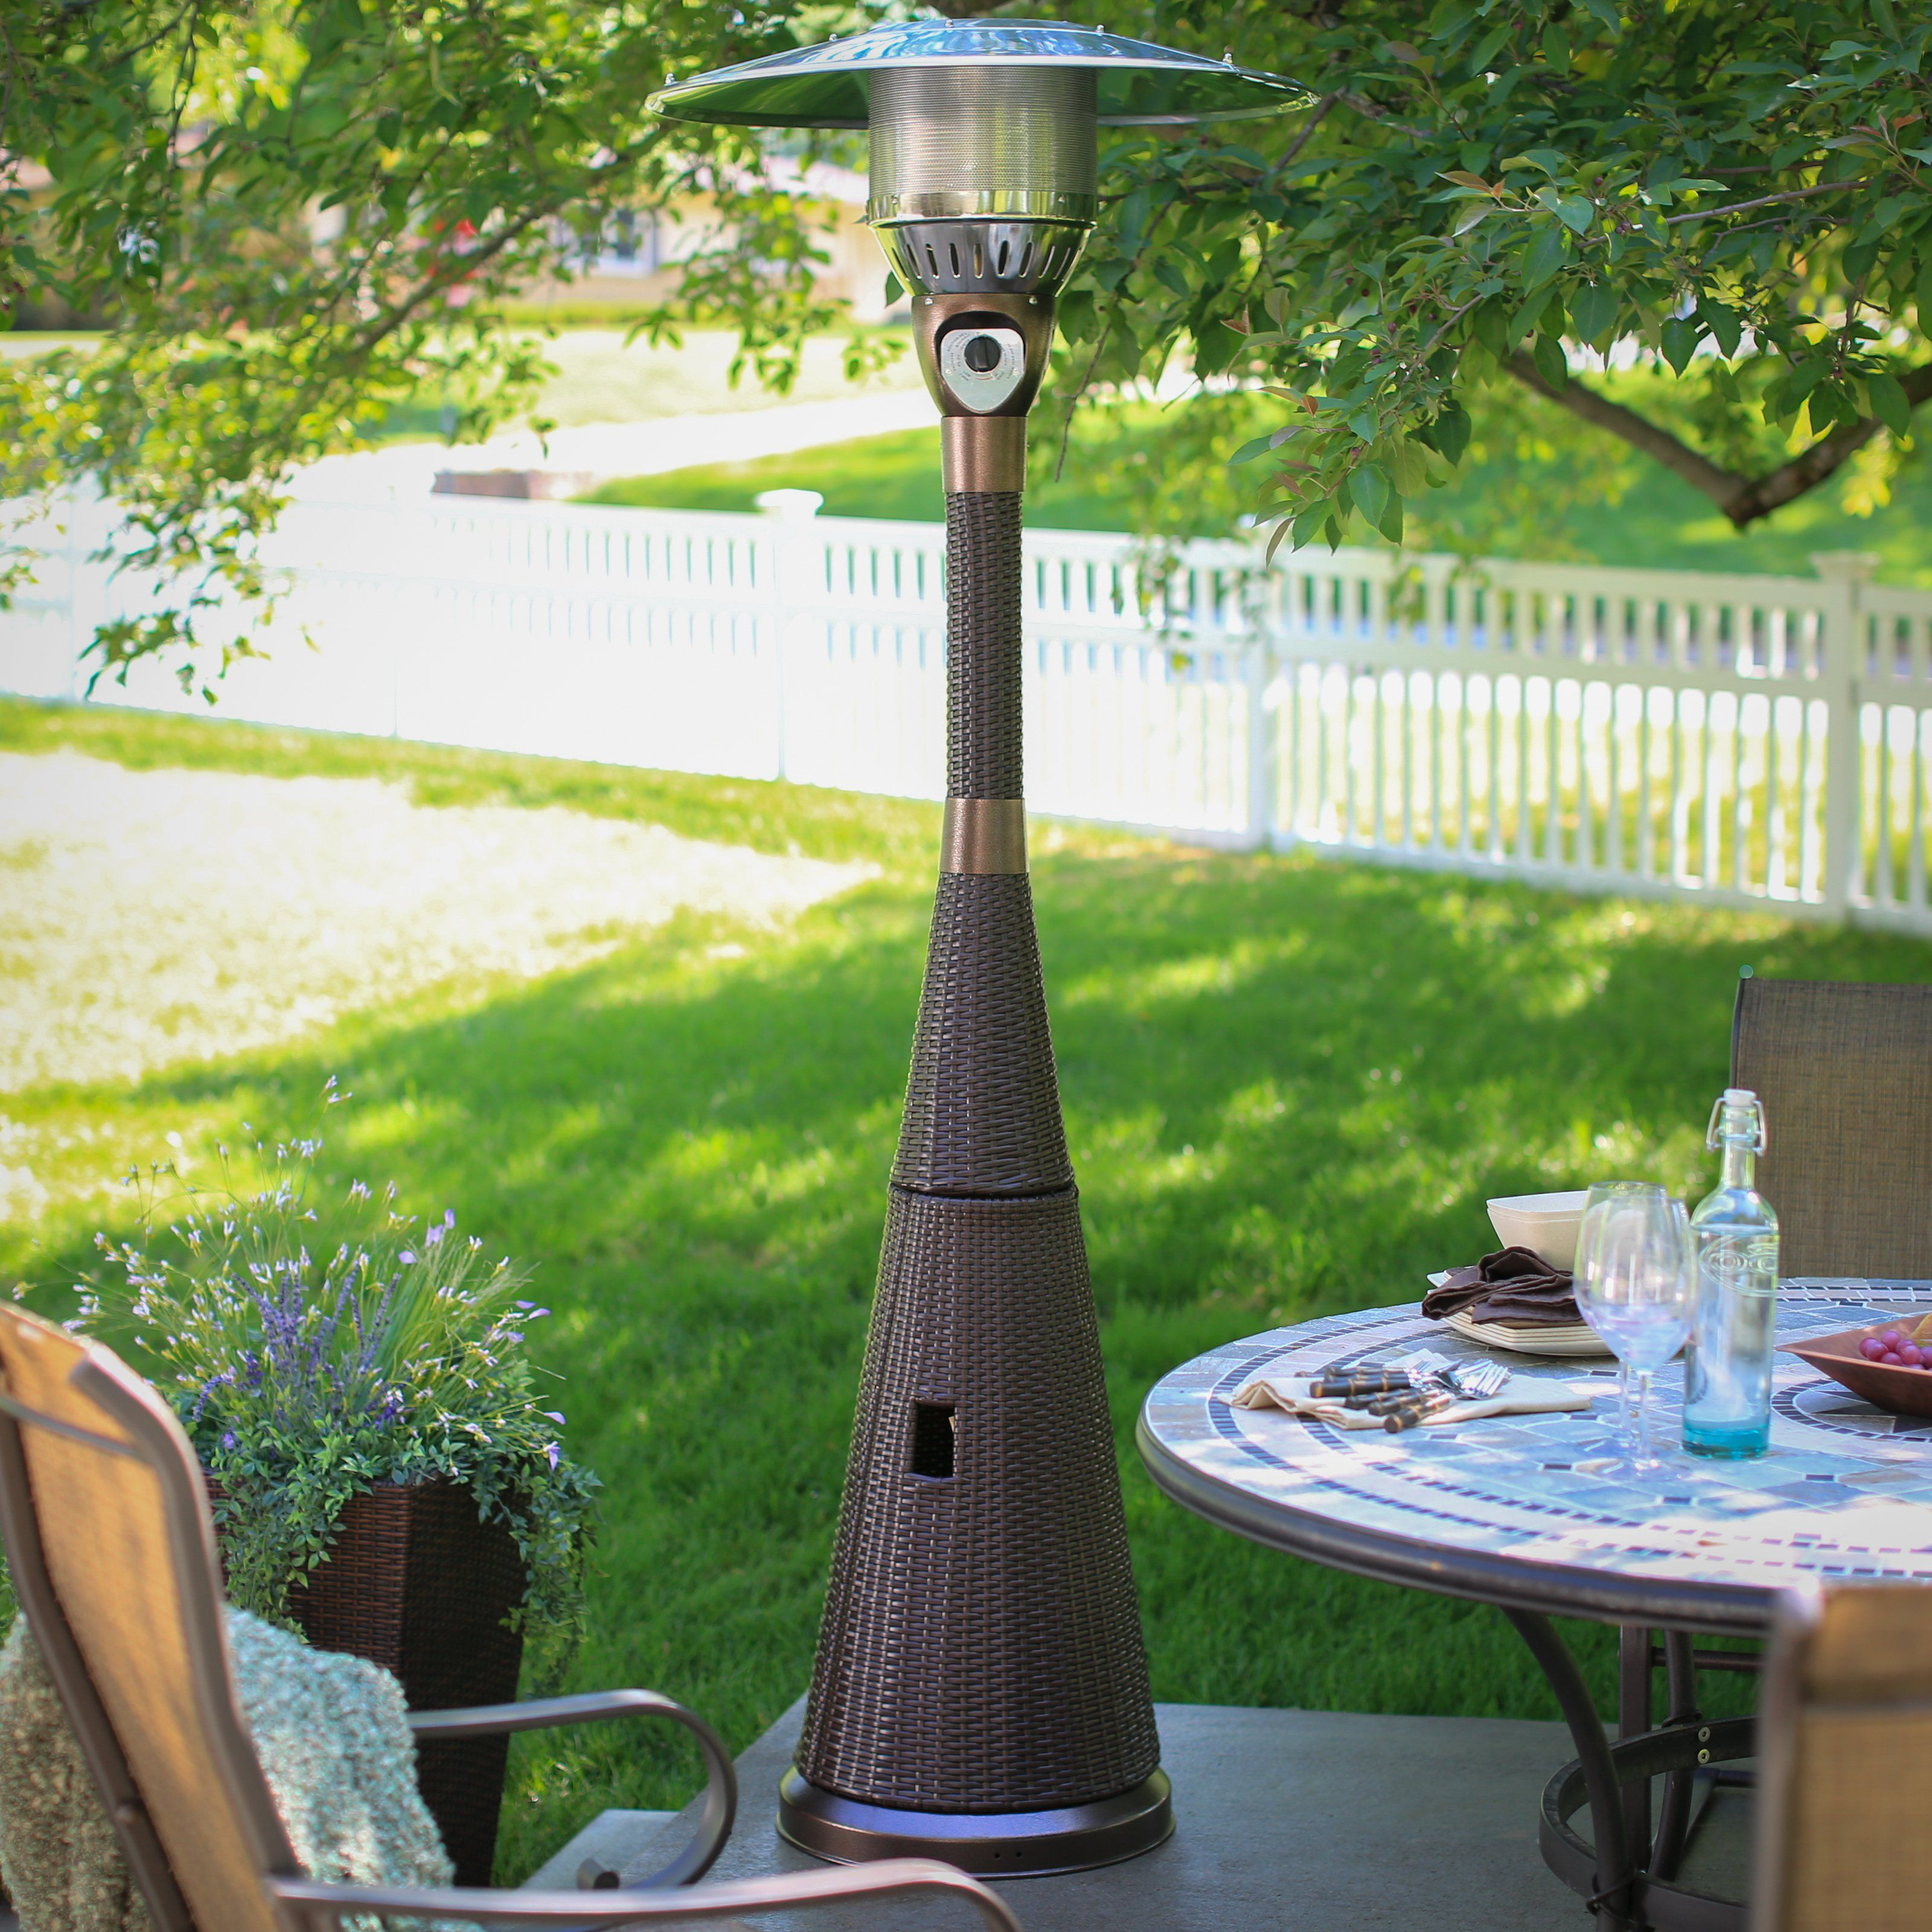 new patio electric heaters zm tabletop photos of heater az hil